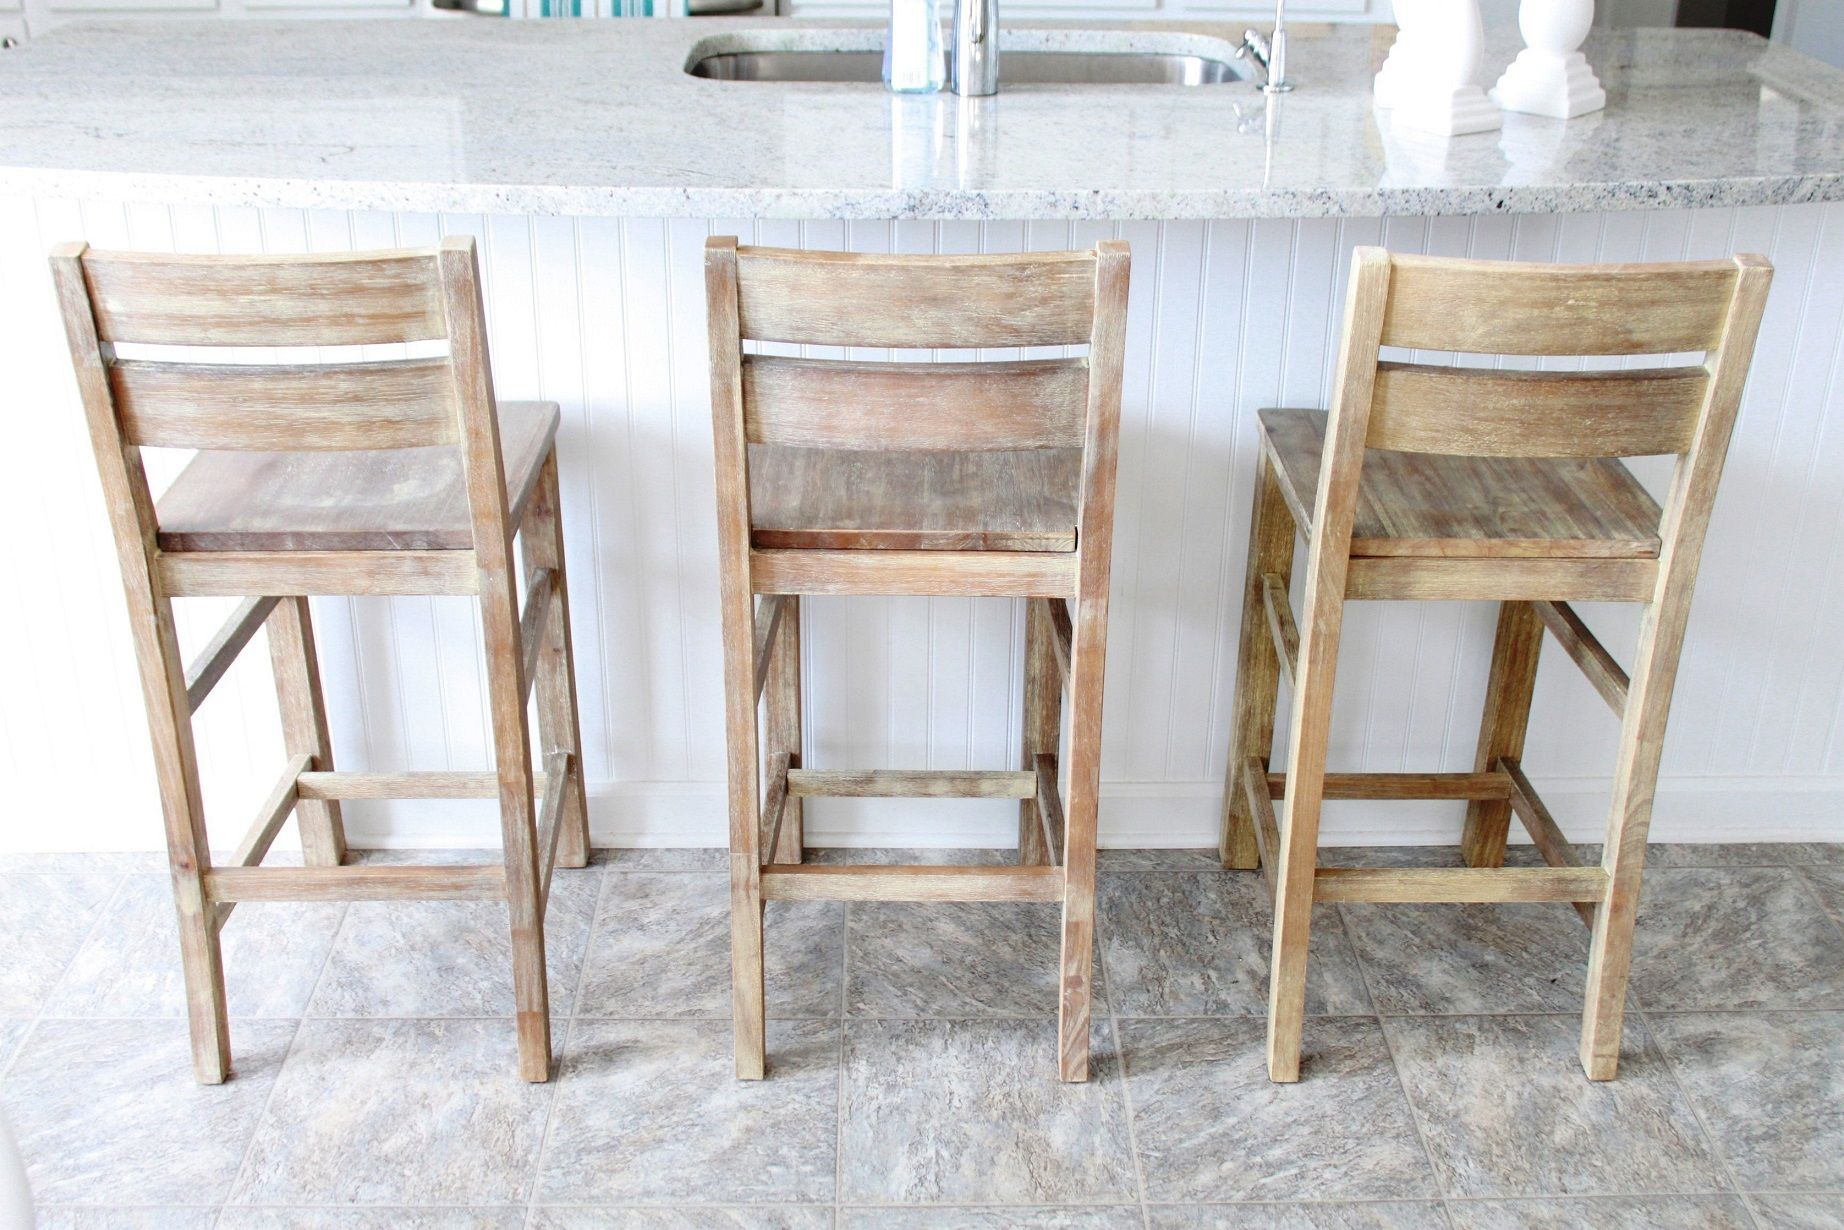 Wooden Kitchen Stools Diy Bar Stools With Backs Ideas Kitchen In 2019 Diy